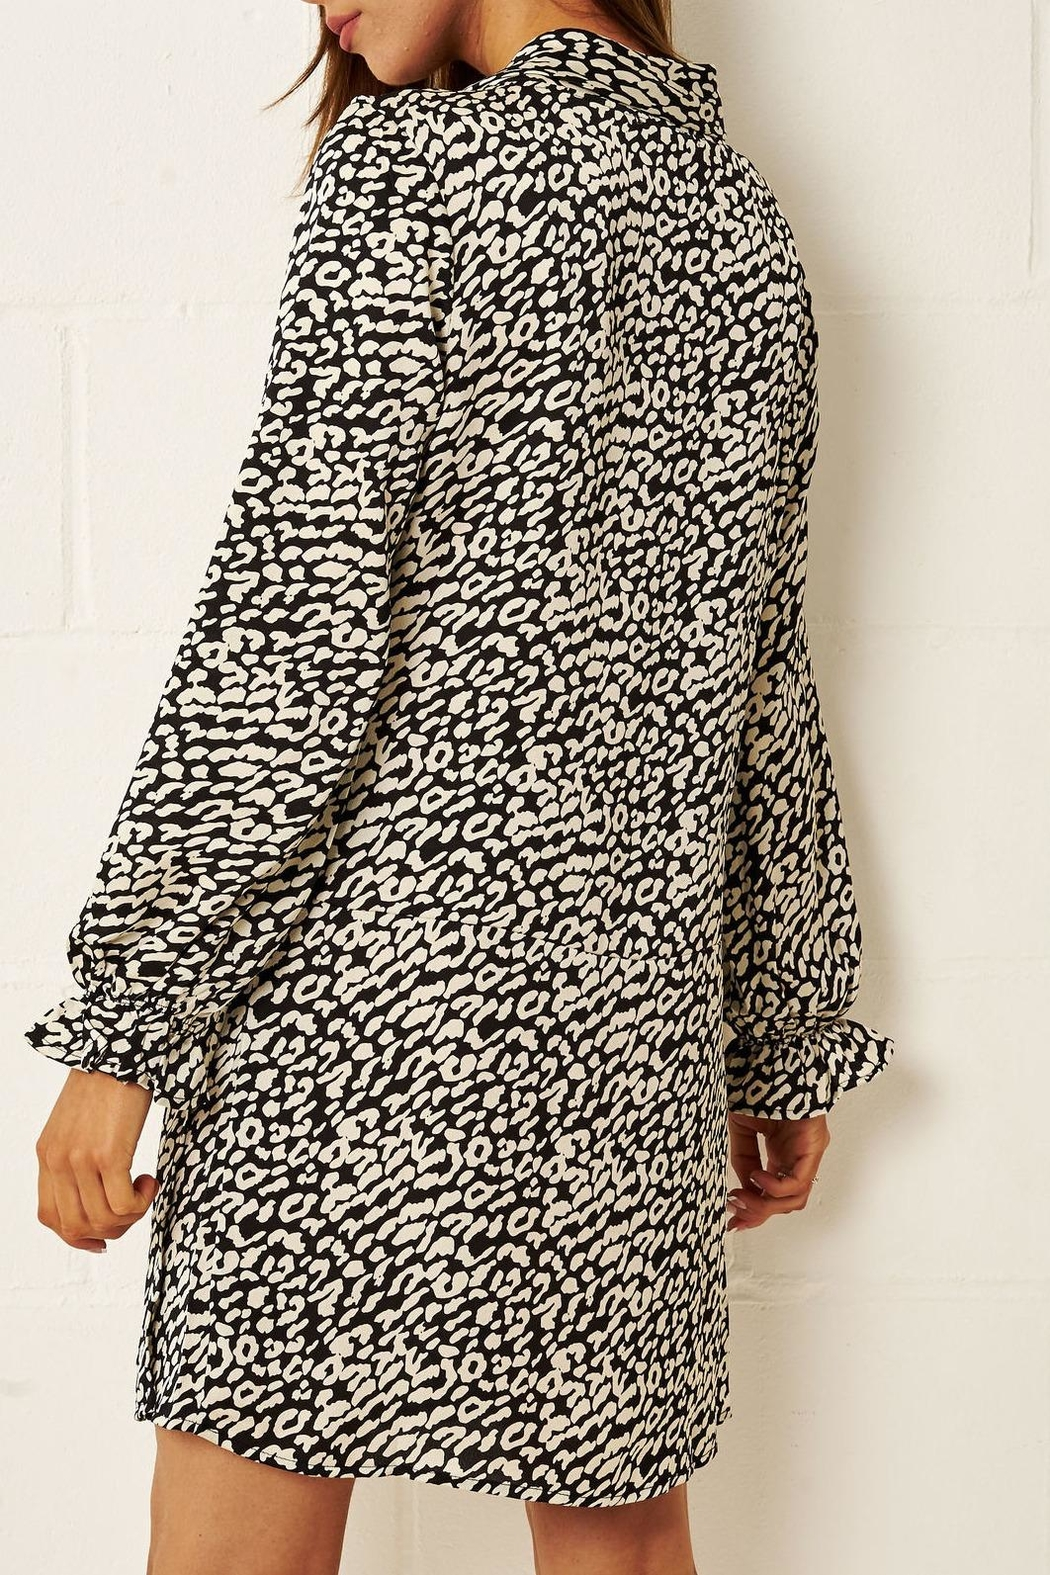 frontrow Cream Leopard-Print Dress - Front Full Image